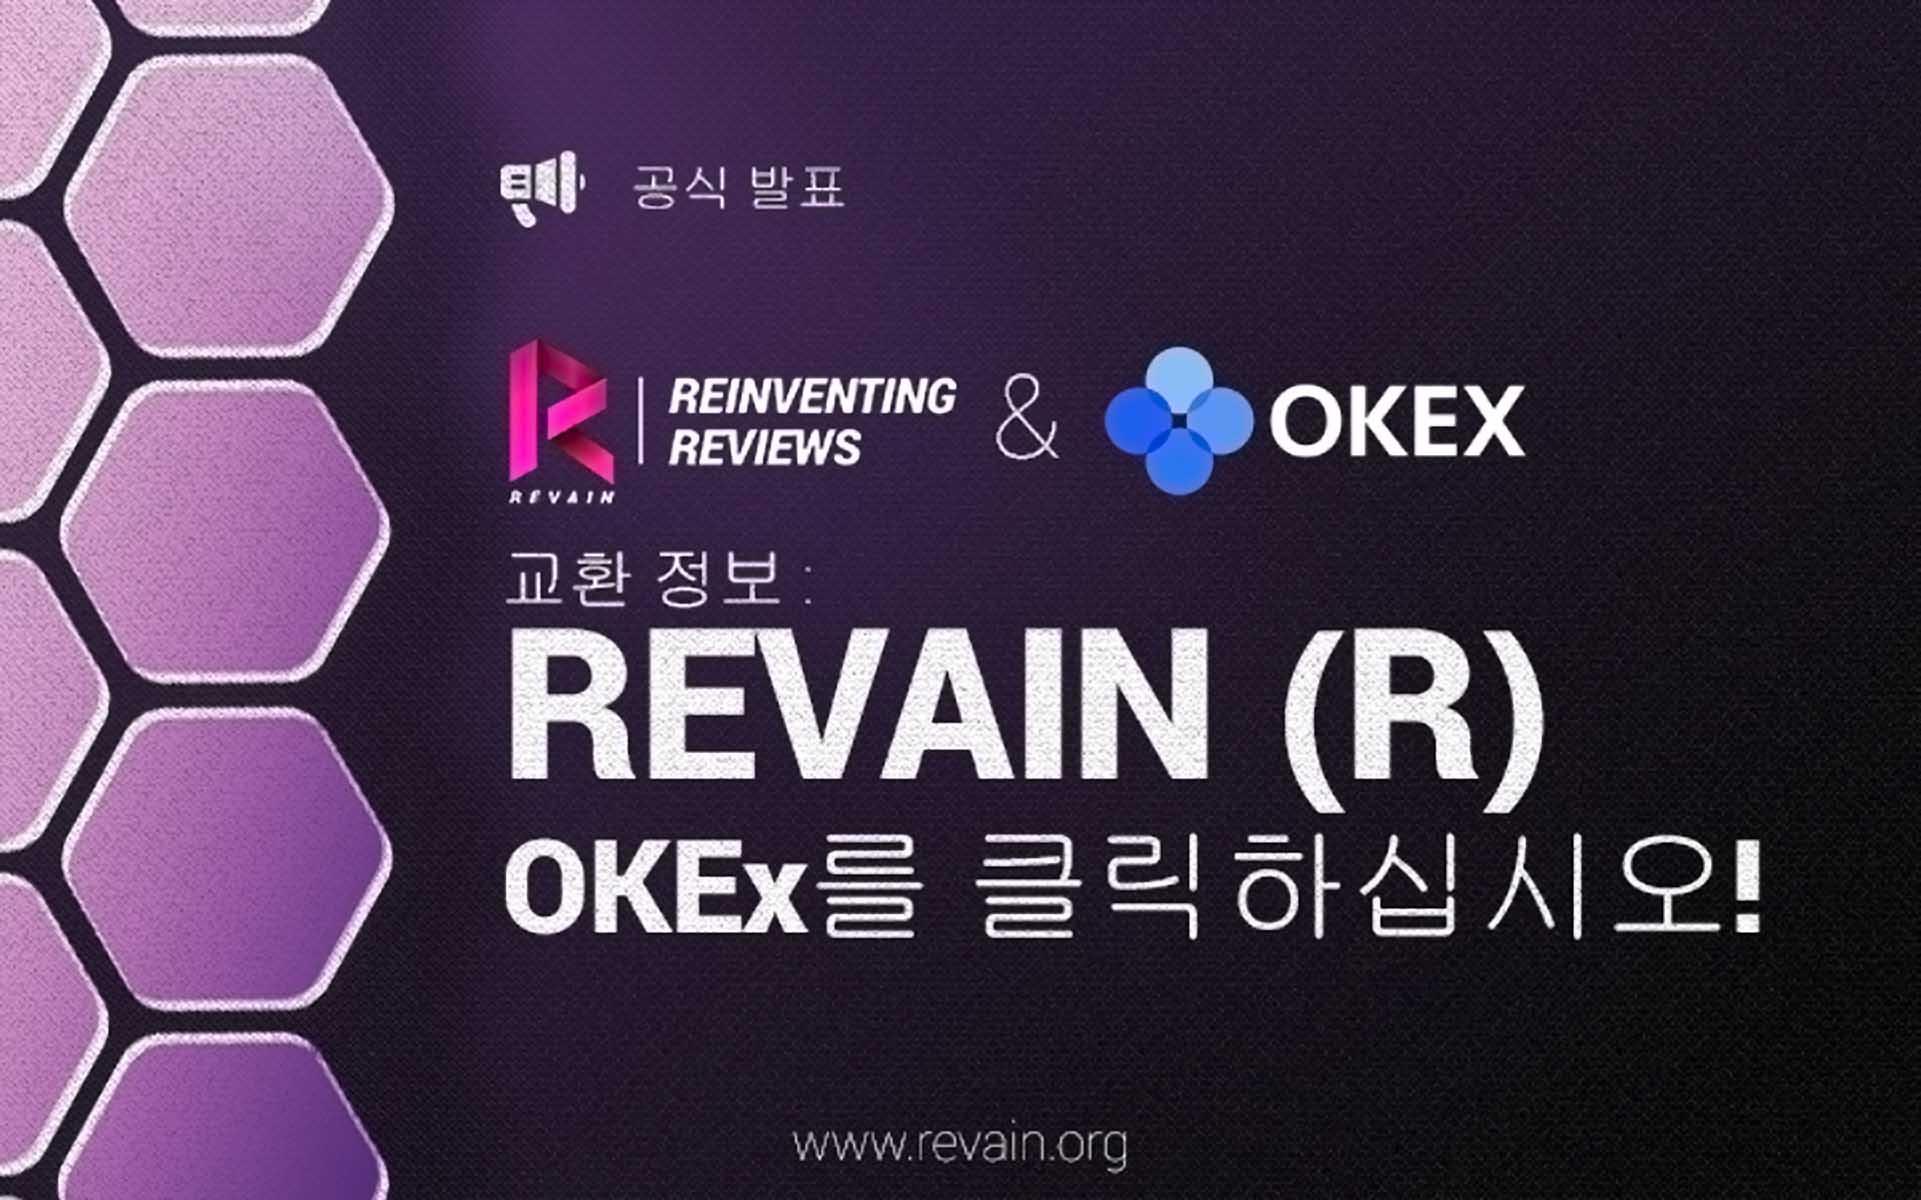 Revain Gets Listed on OKEx, One of the World's Largest Cryptocurrency Exchanges